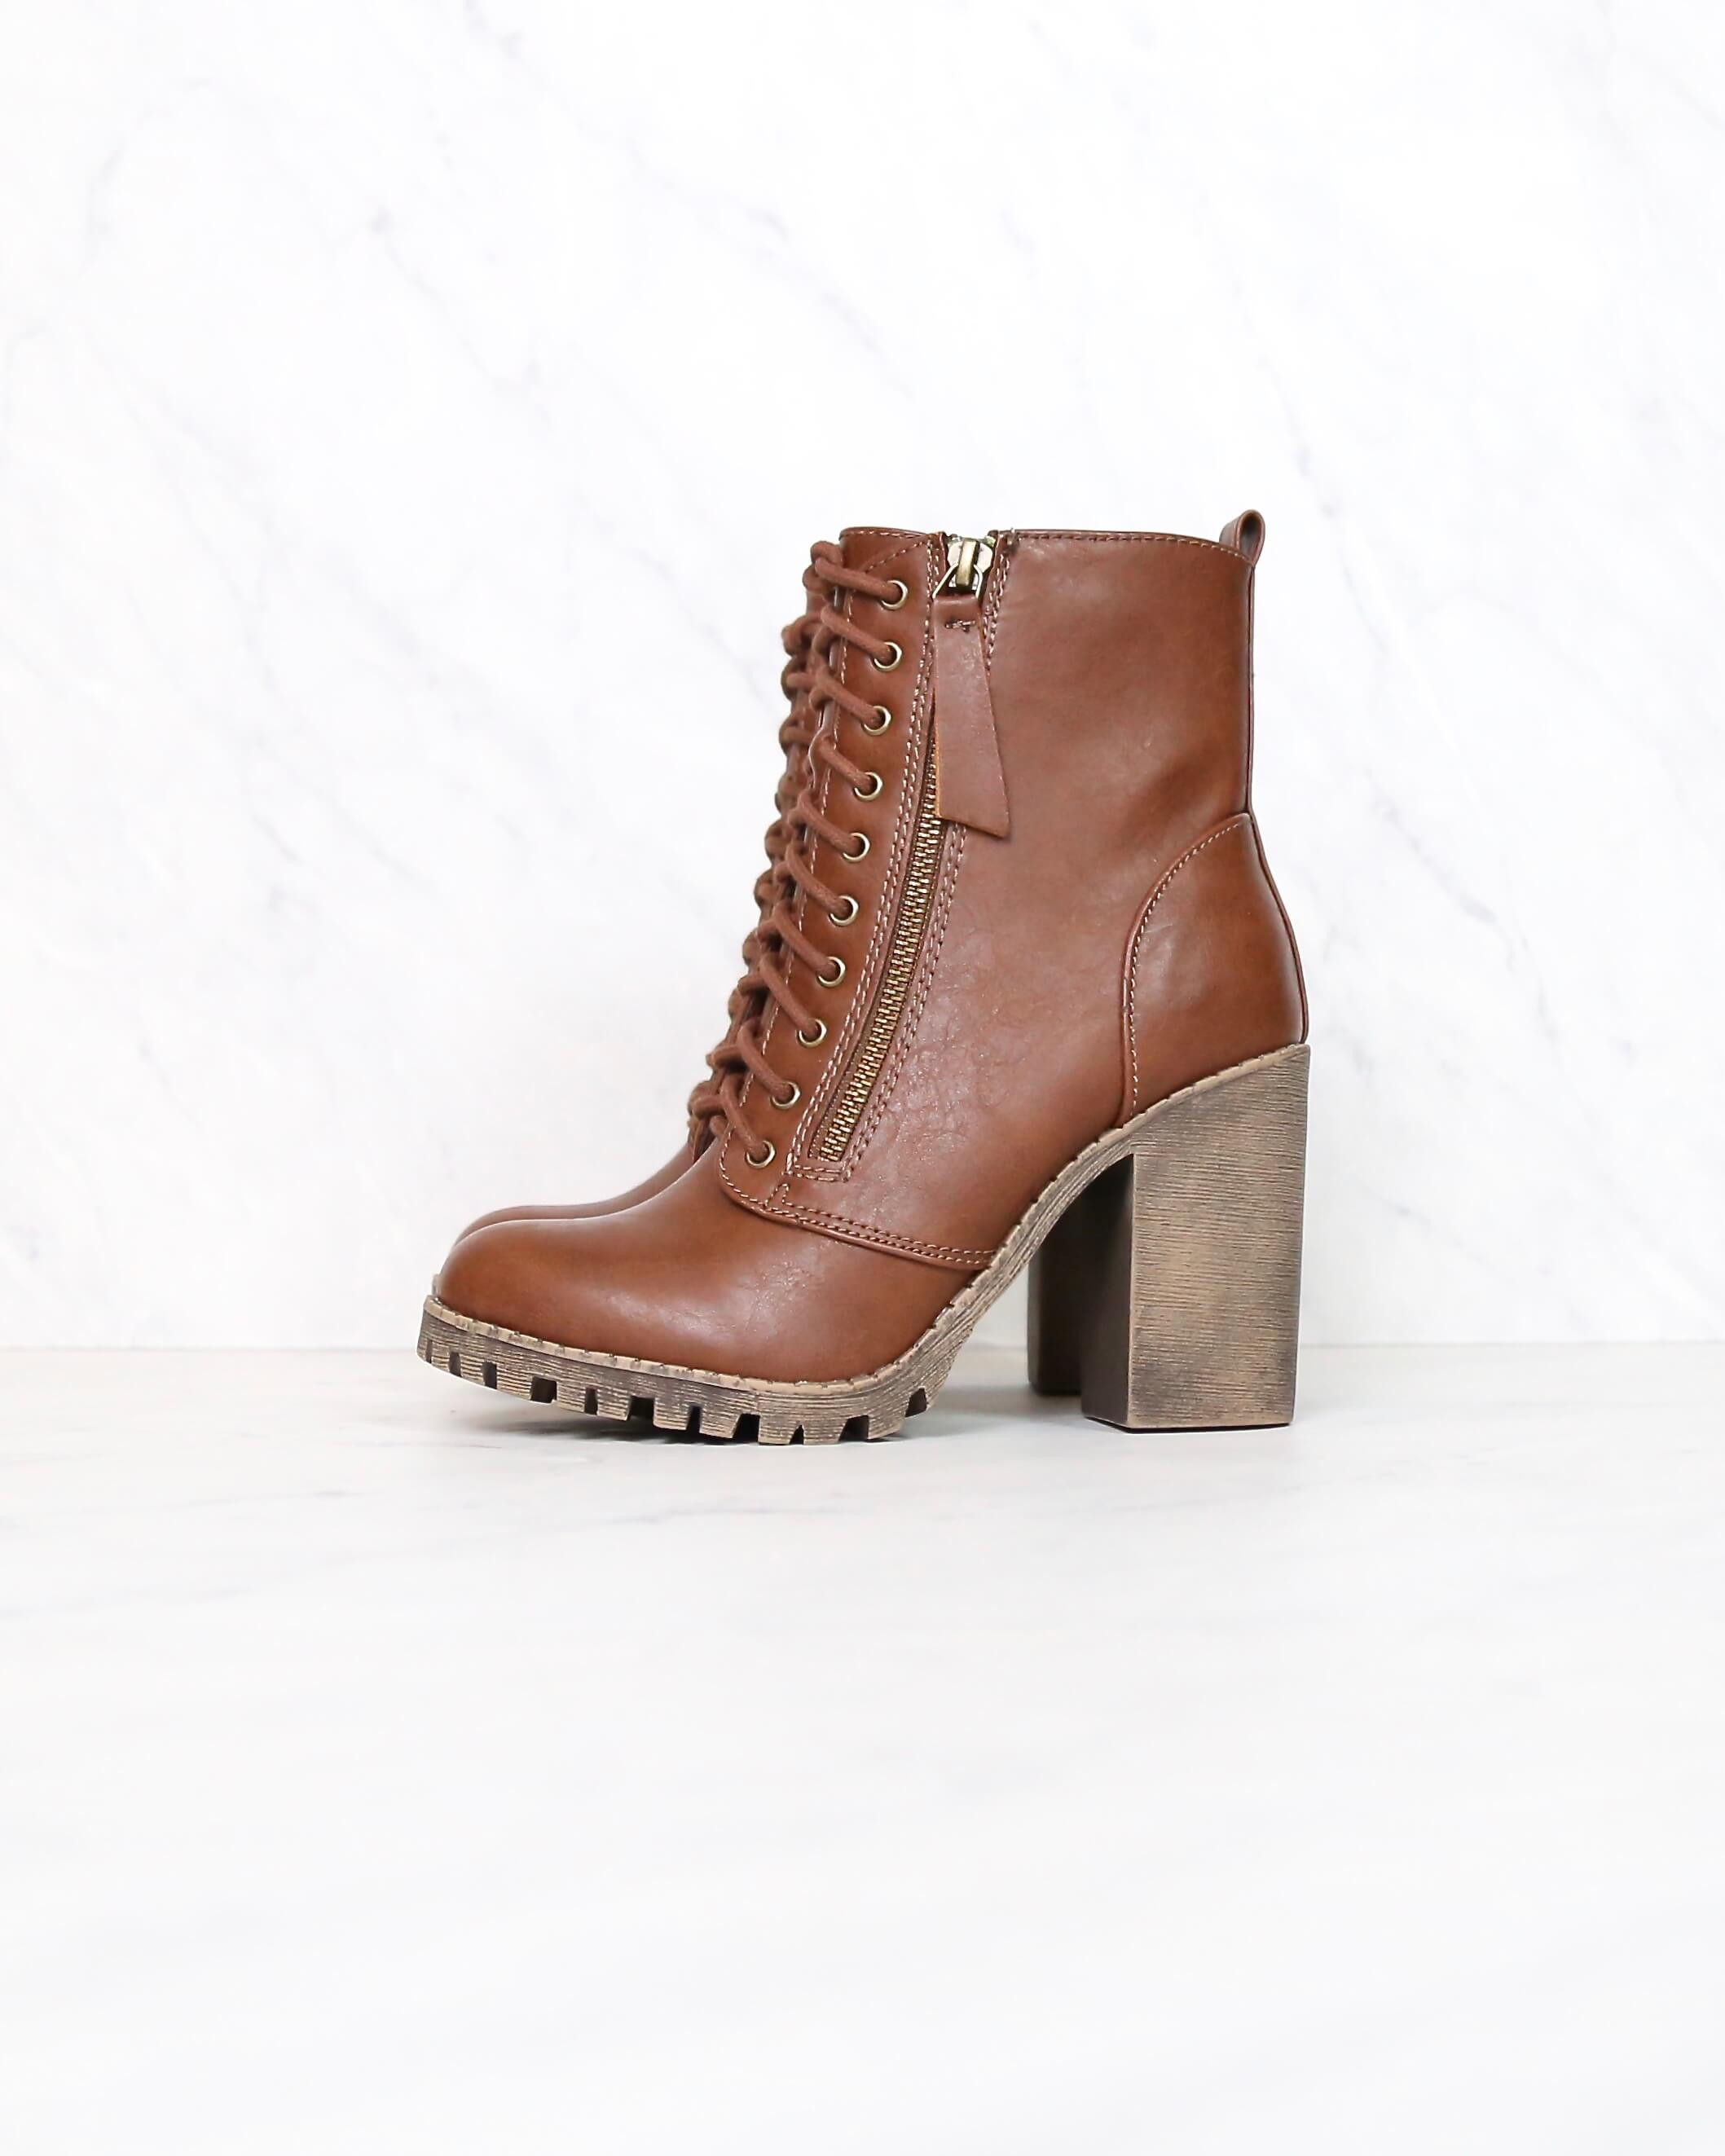 ce0a8b54495a Faux Leather Lace Up Chunky Ankle Boot in TAN malia-s